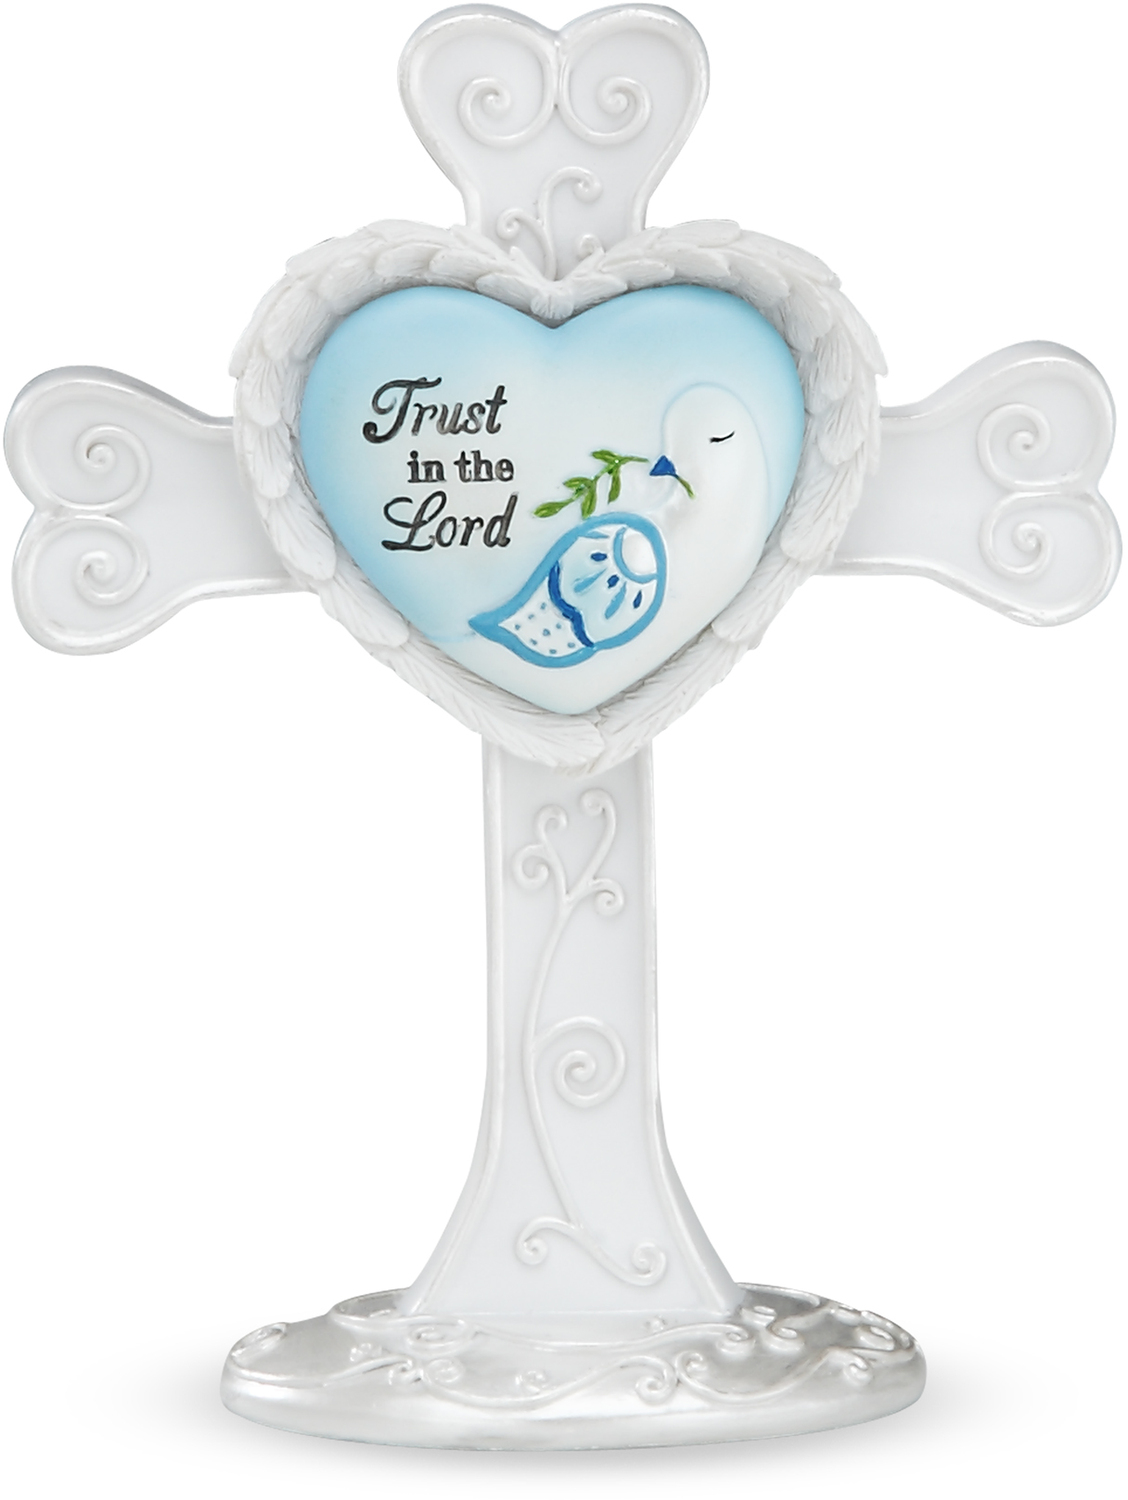 "Trust in the Lord by Heart Expressions - Trust in the Lord - 4"" Self Standing Cross"